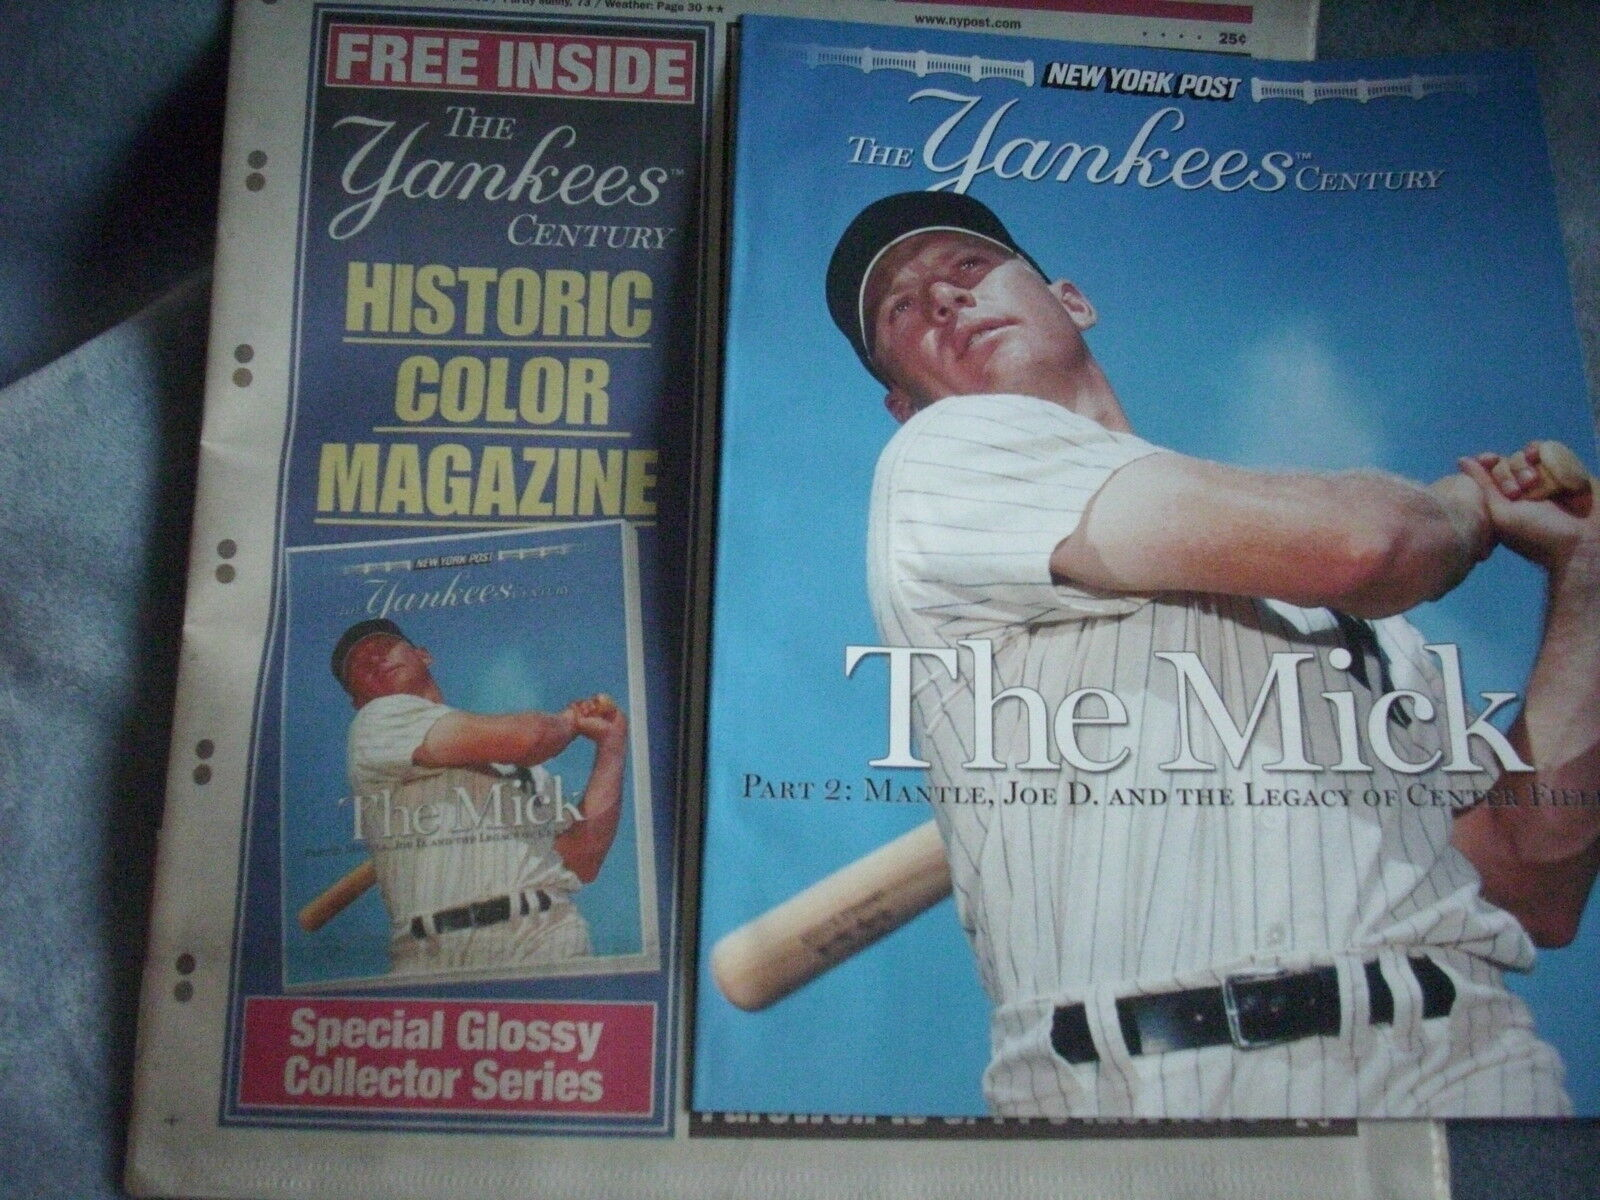 NY Post Complete Coll. Yankees Jeter Mantle Mariano Ruth 100th Anniv 1903-2003